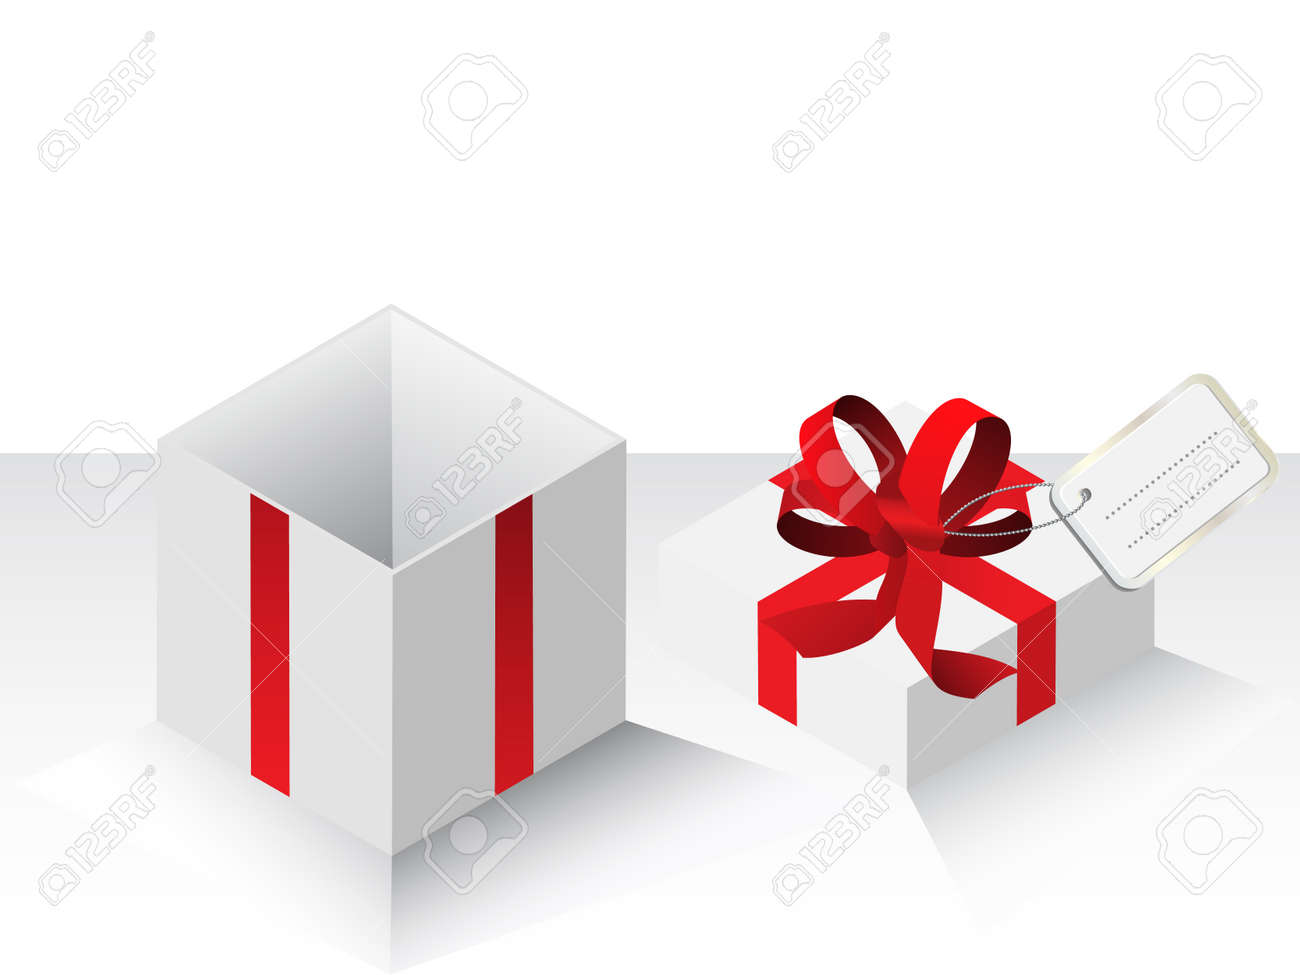 Vector - Illustration of a present or gift wrapped with a red bow and a card Stock Vector - 3771168